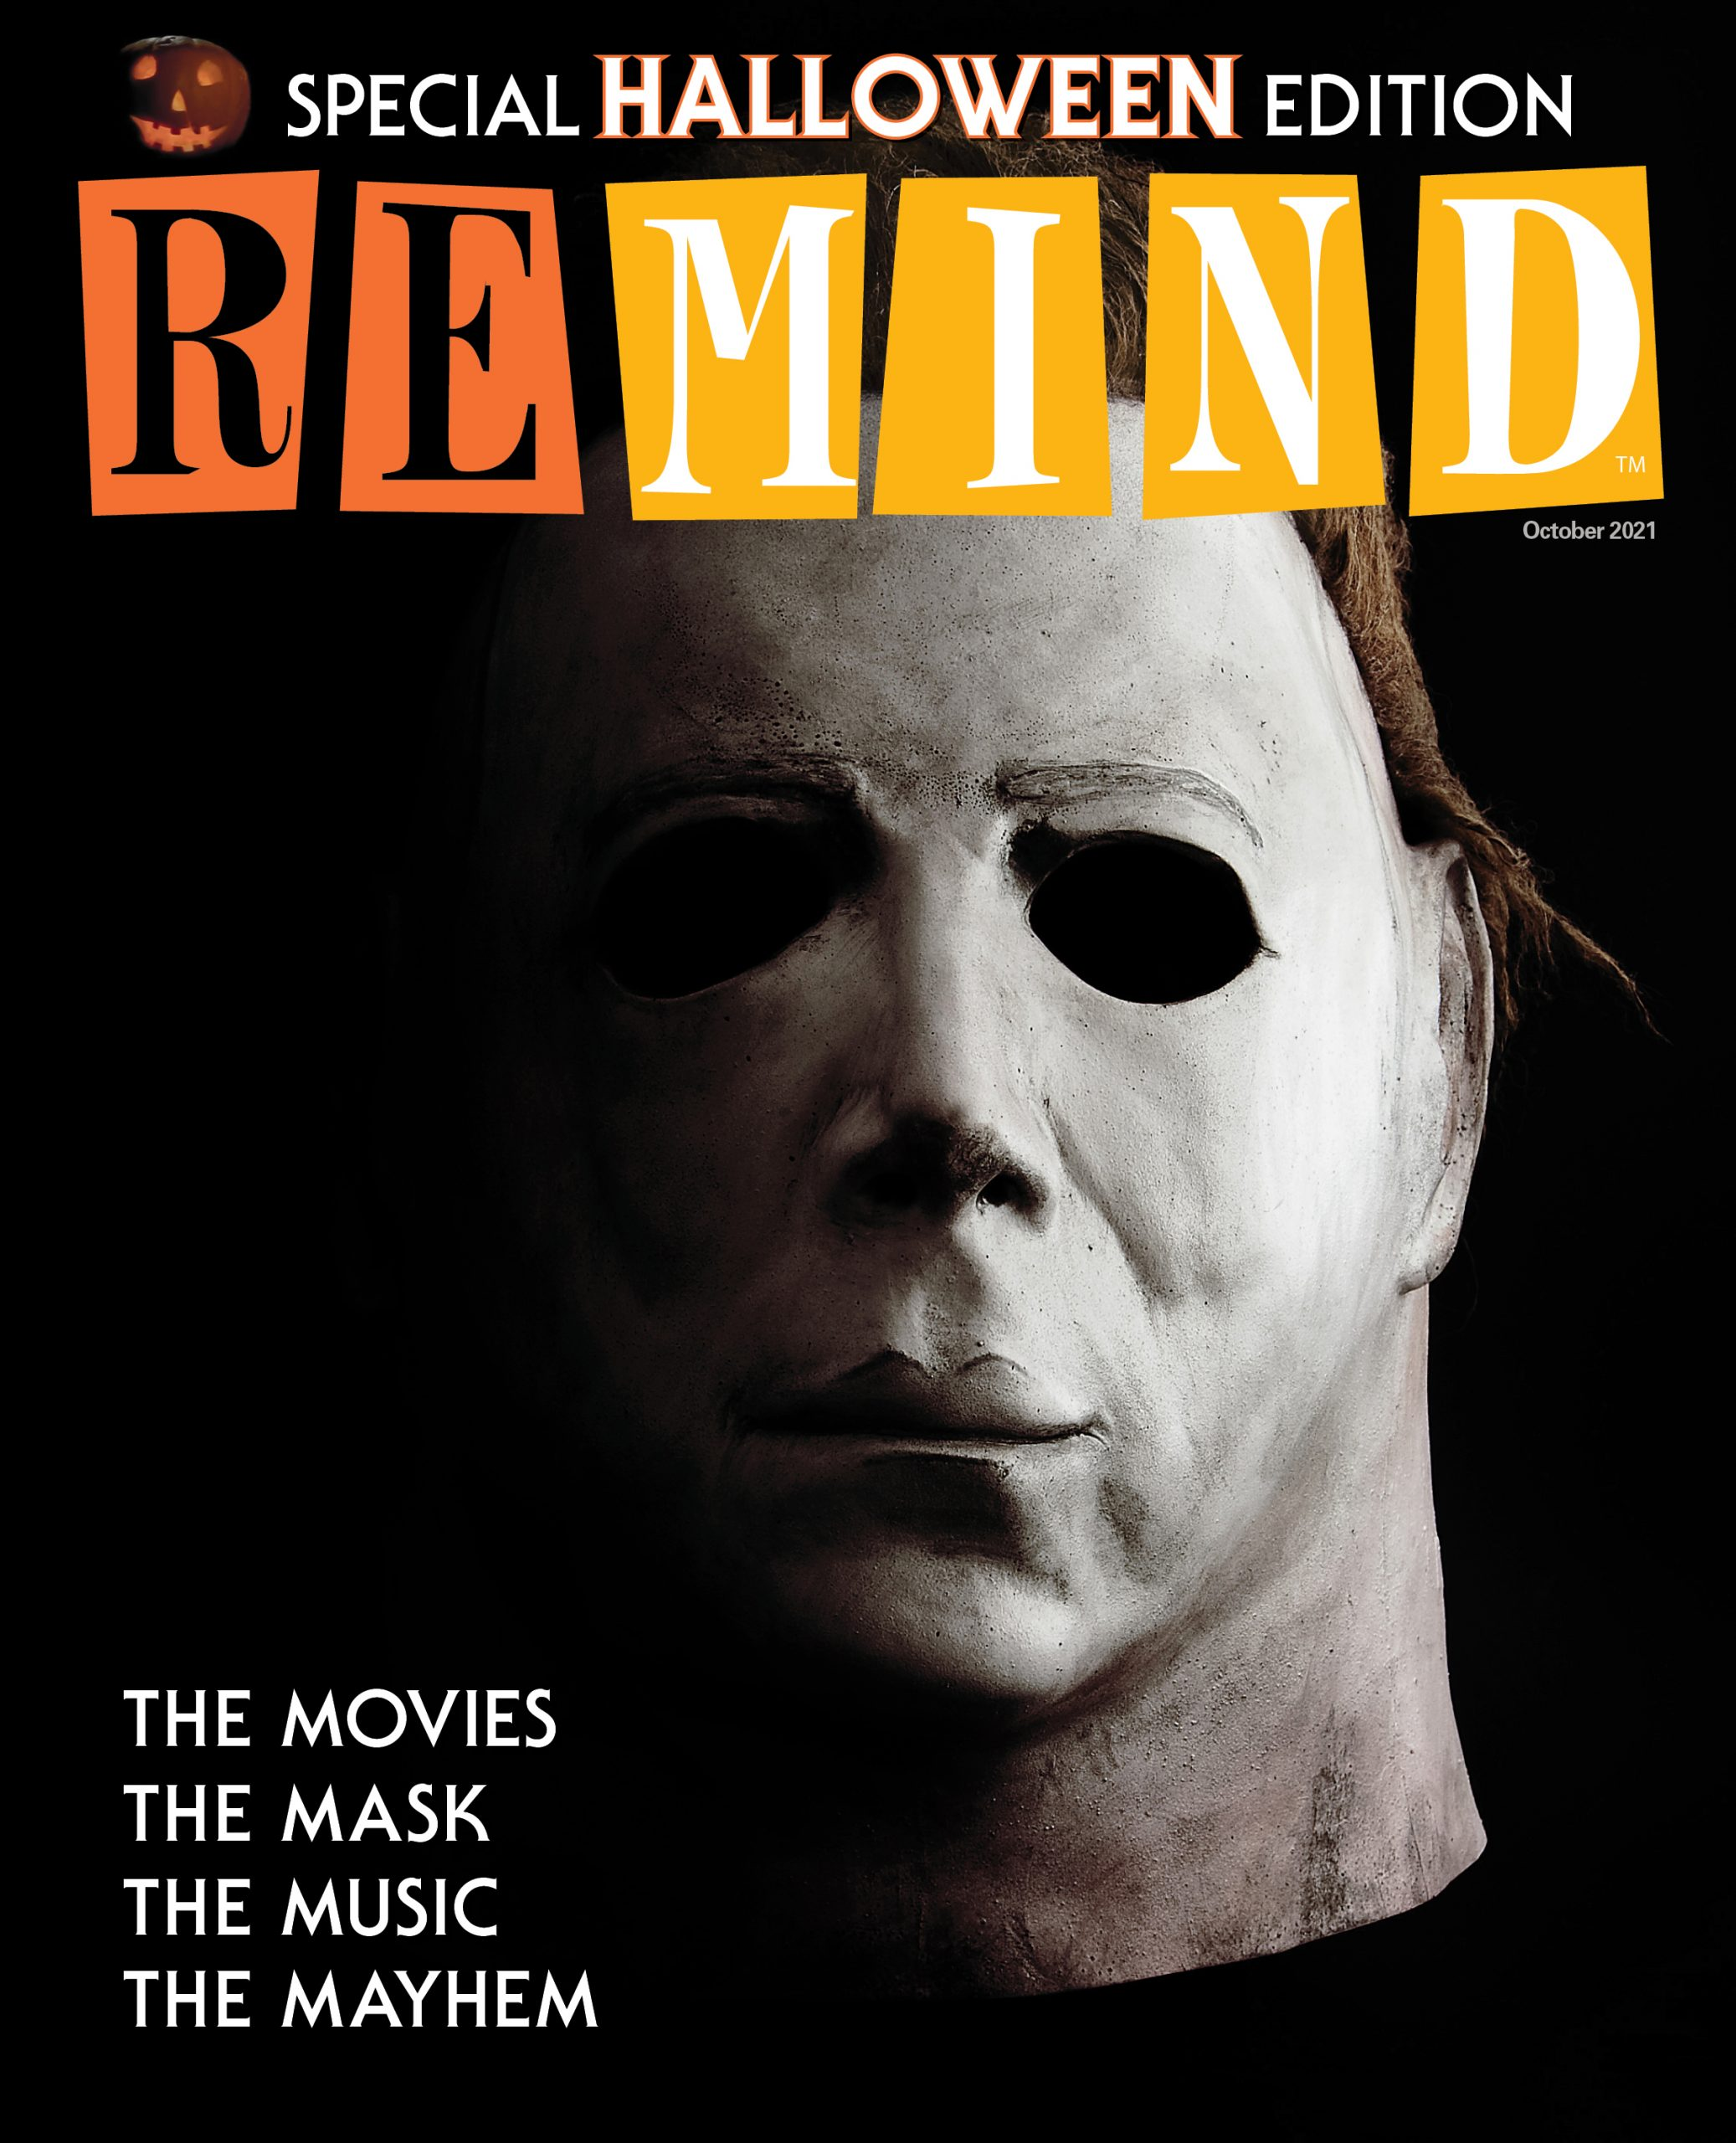 ALL-HALLOWEEN ISSUE OF REMIND MAGAZINE ANNOUNCED, JUSTIN BEAHM GUEST EDITOR